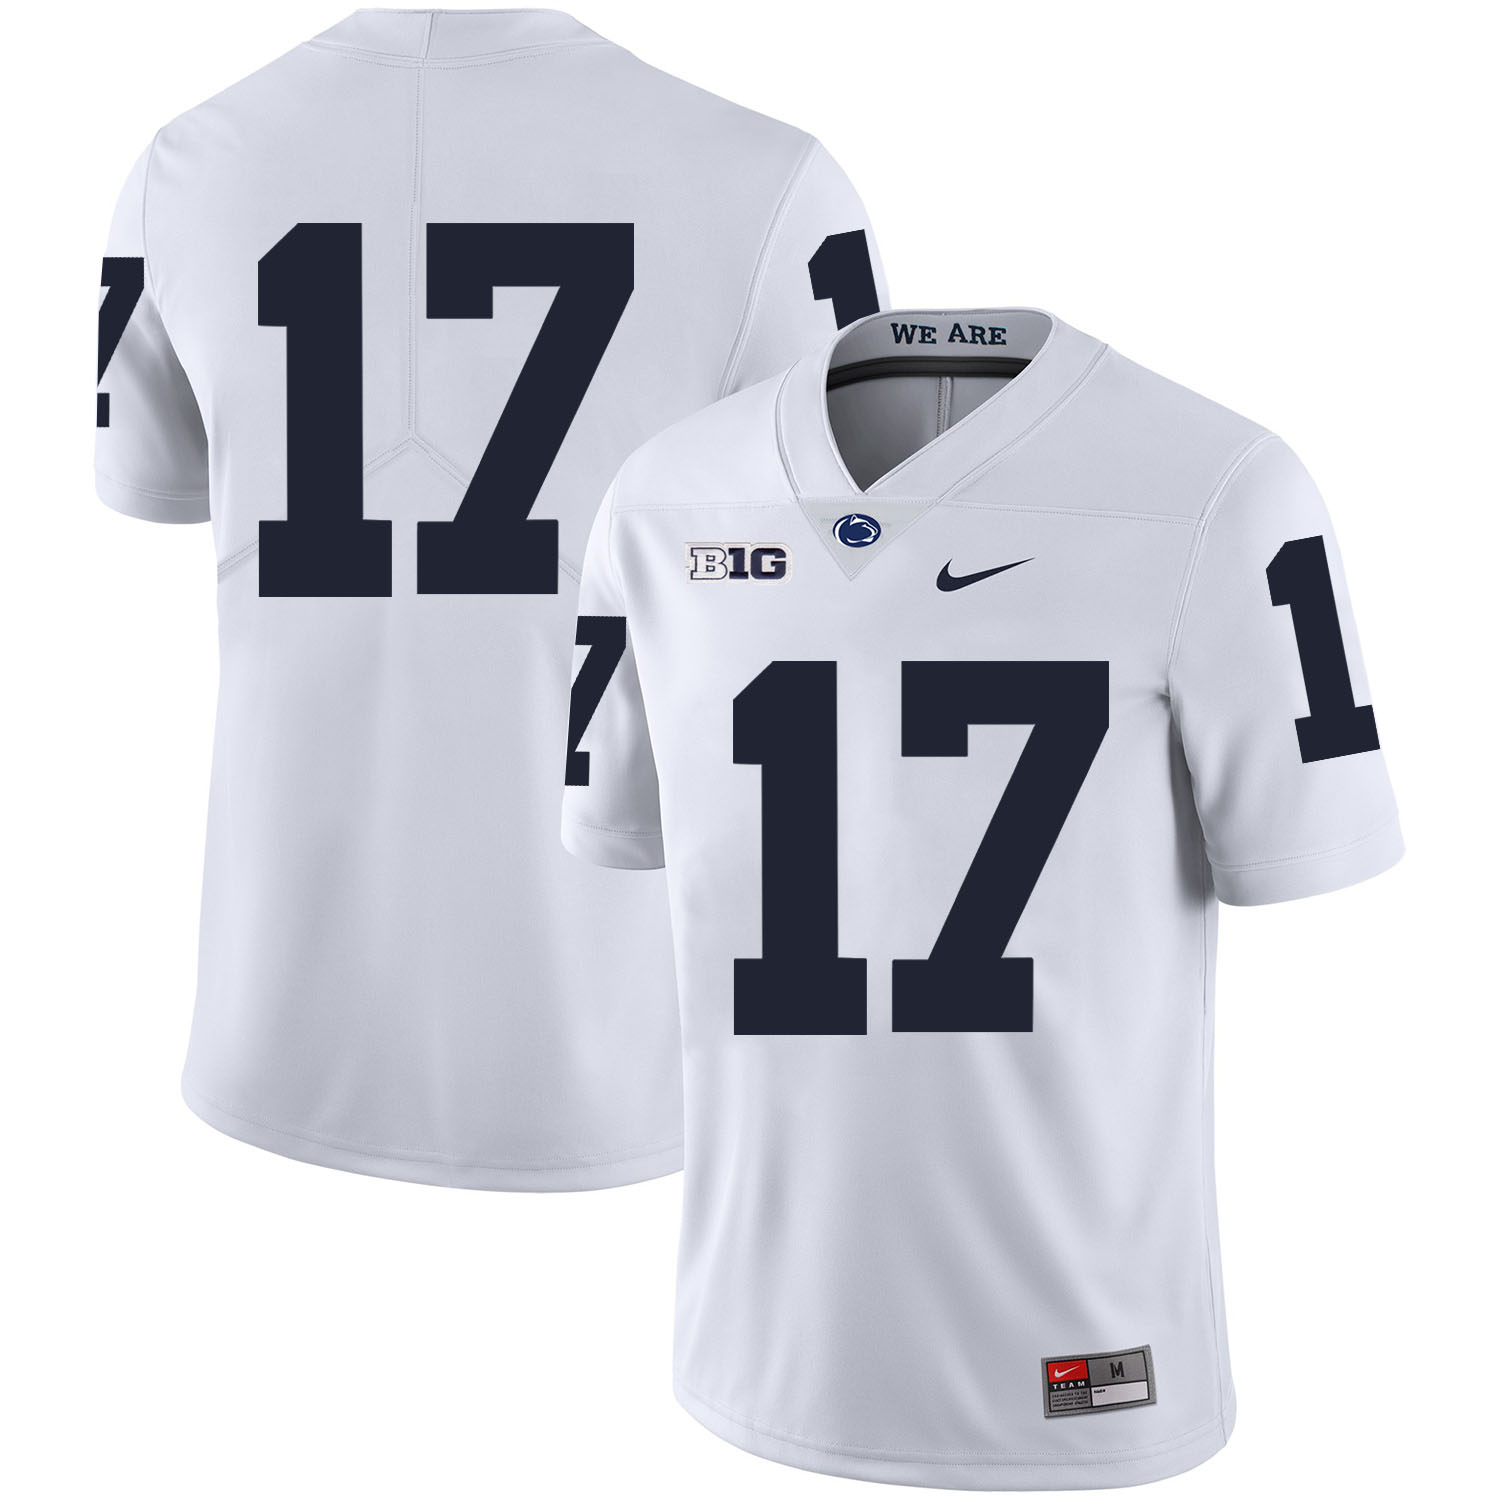 Penn State Nittany Lions 17 Generations Of Greatness White Nike College Football Jersey